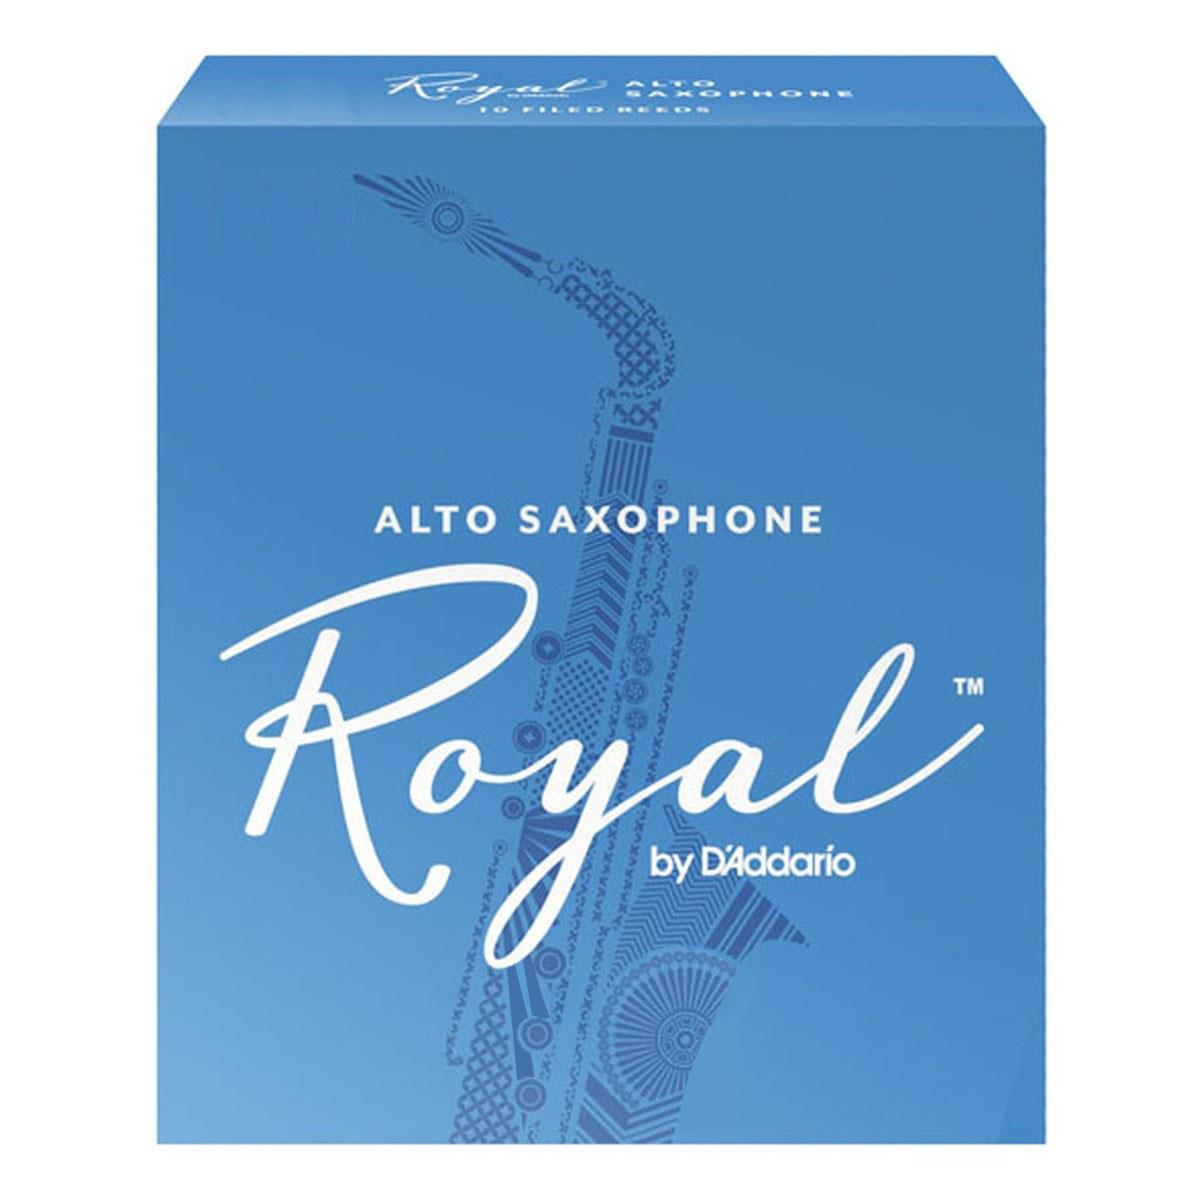 Image of D'Addario Woodwind Royal RJB1040 Alto Sax Reeds Strength 4 10-pack 0046716532992